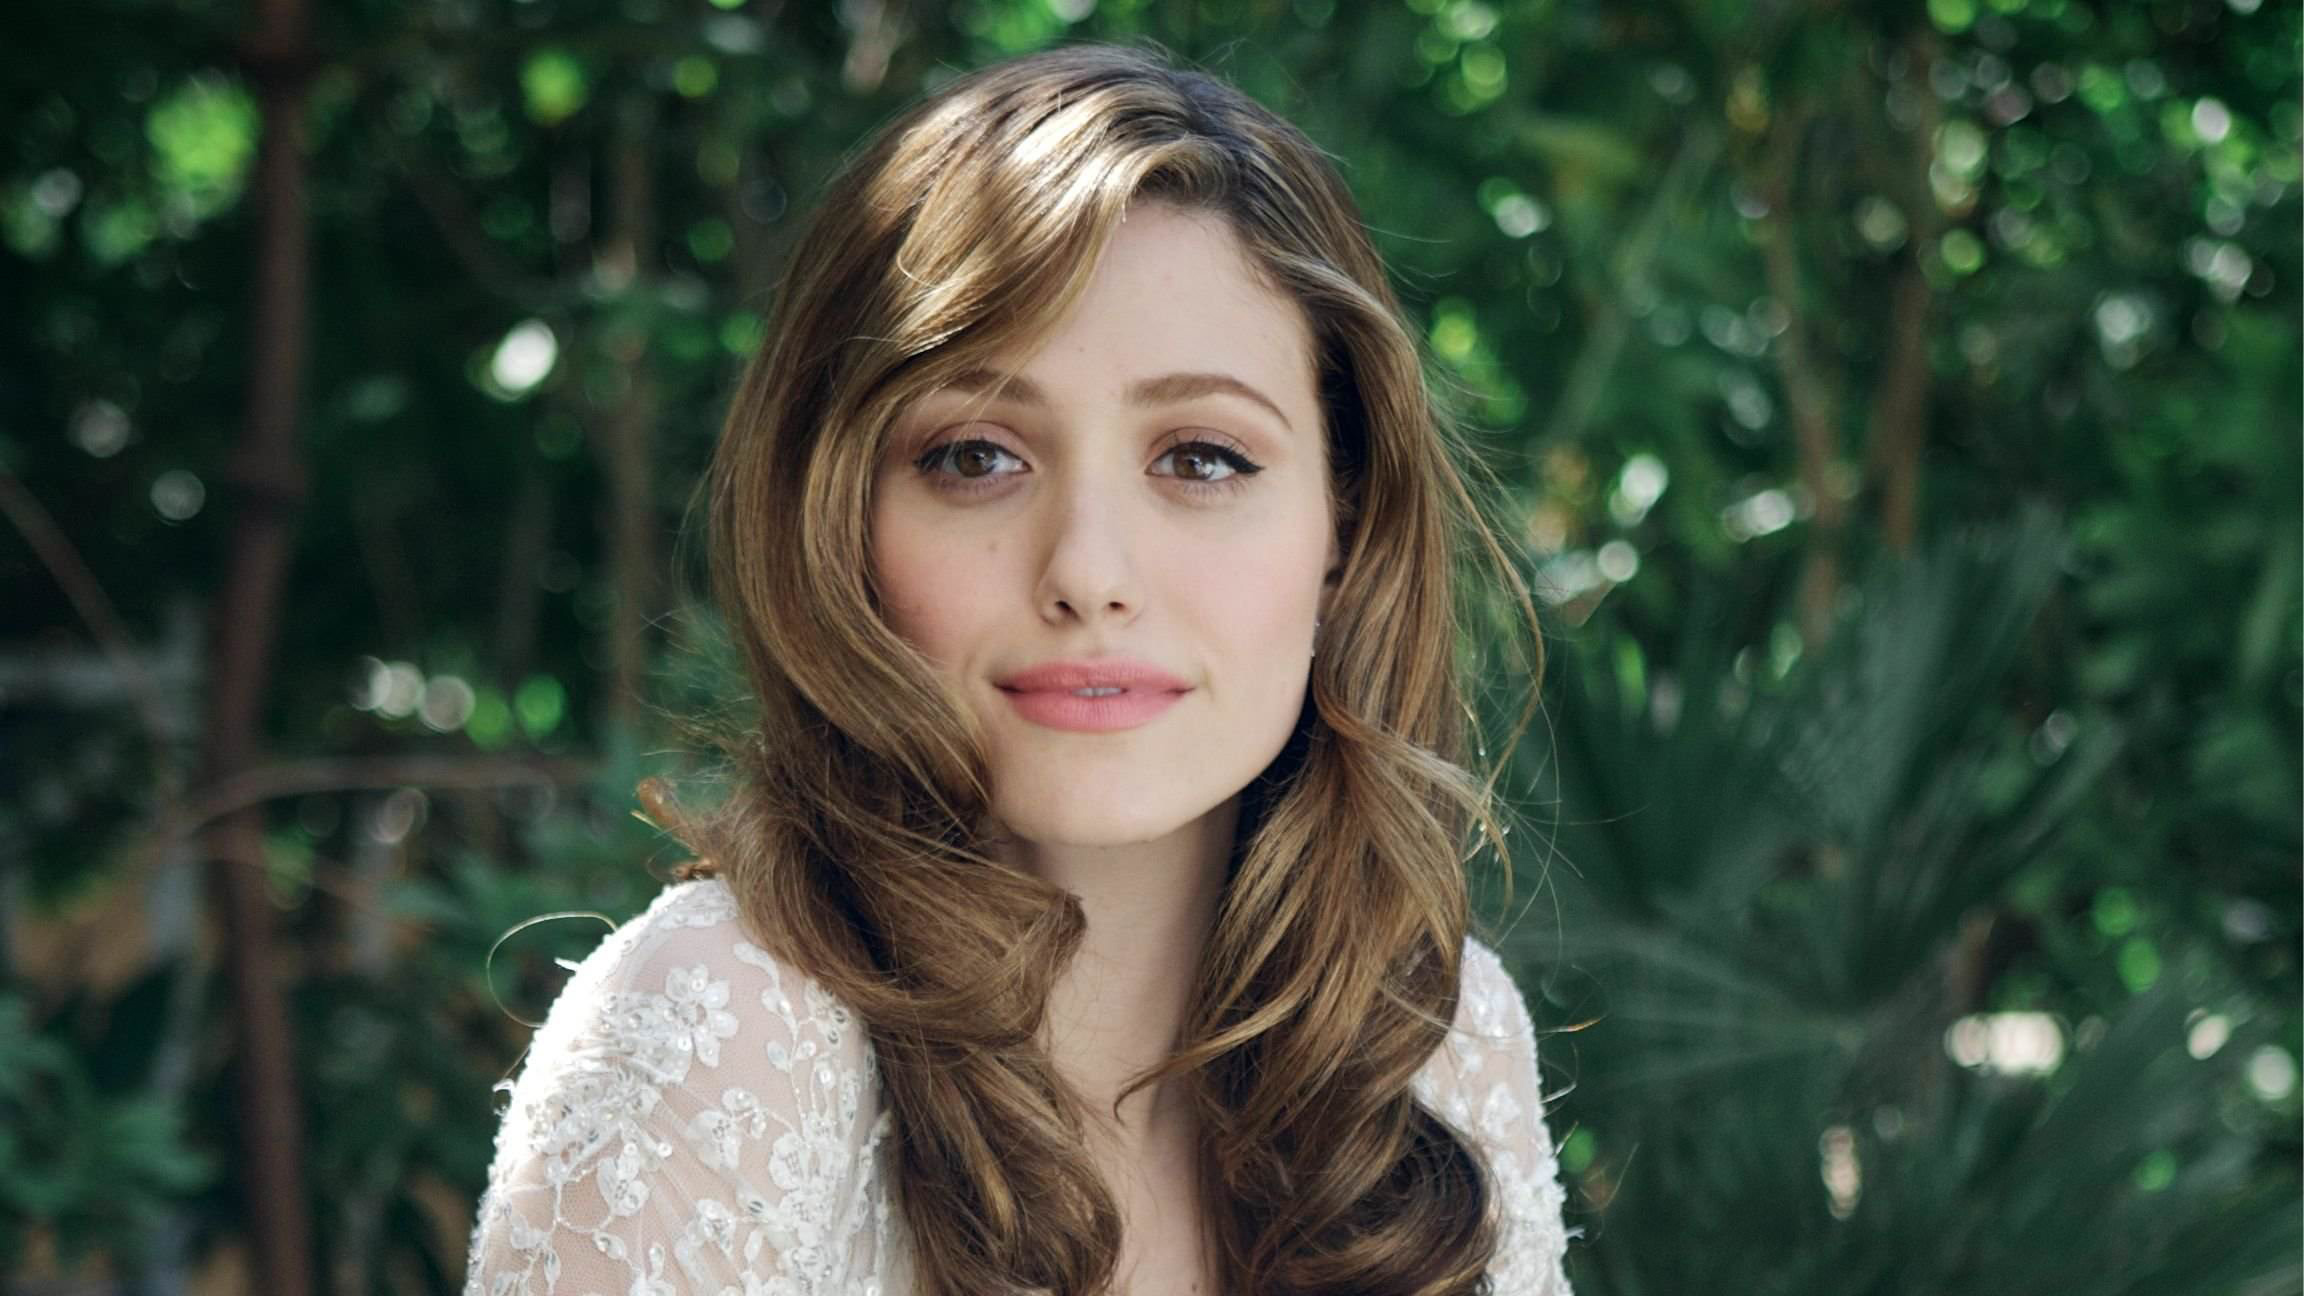 Emmy Rossum 2018 Hd Celebrities 4k Wallpapers Images